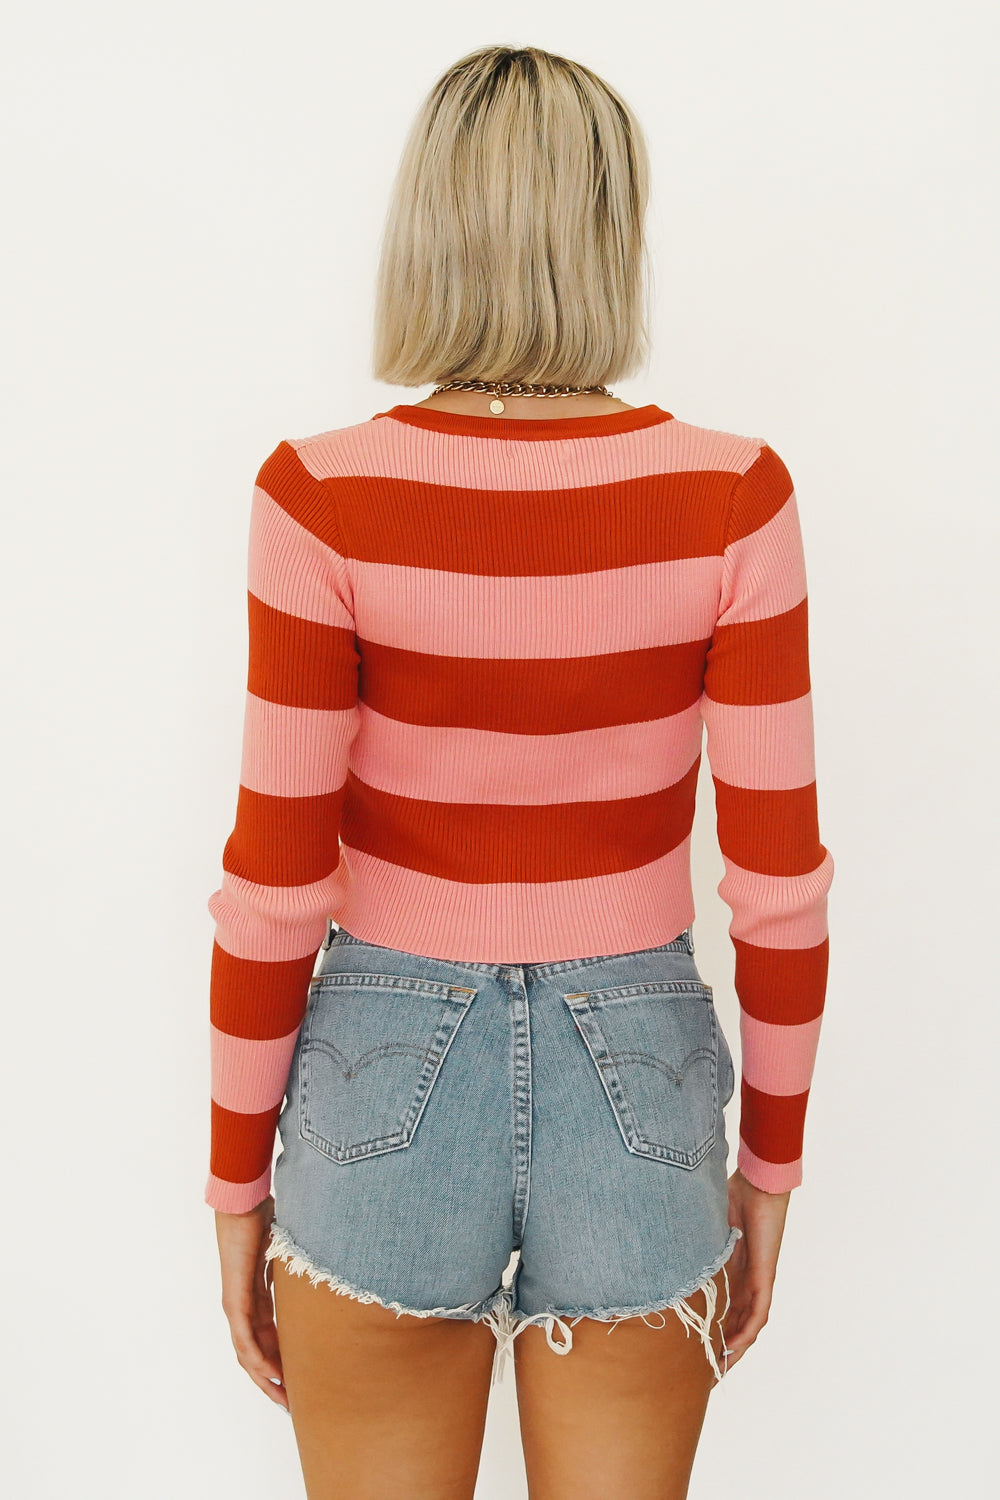 L.A Apartment Ribbed Knit Top // White